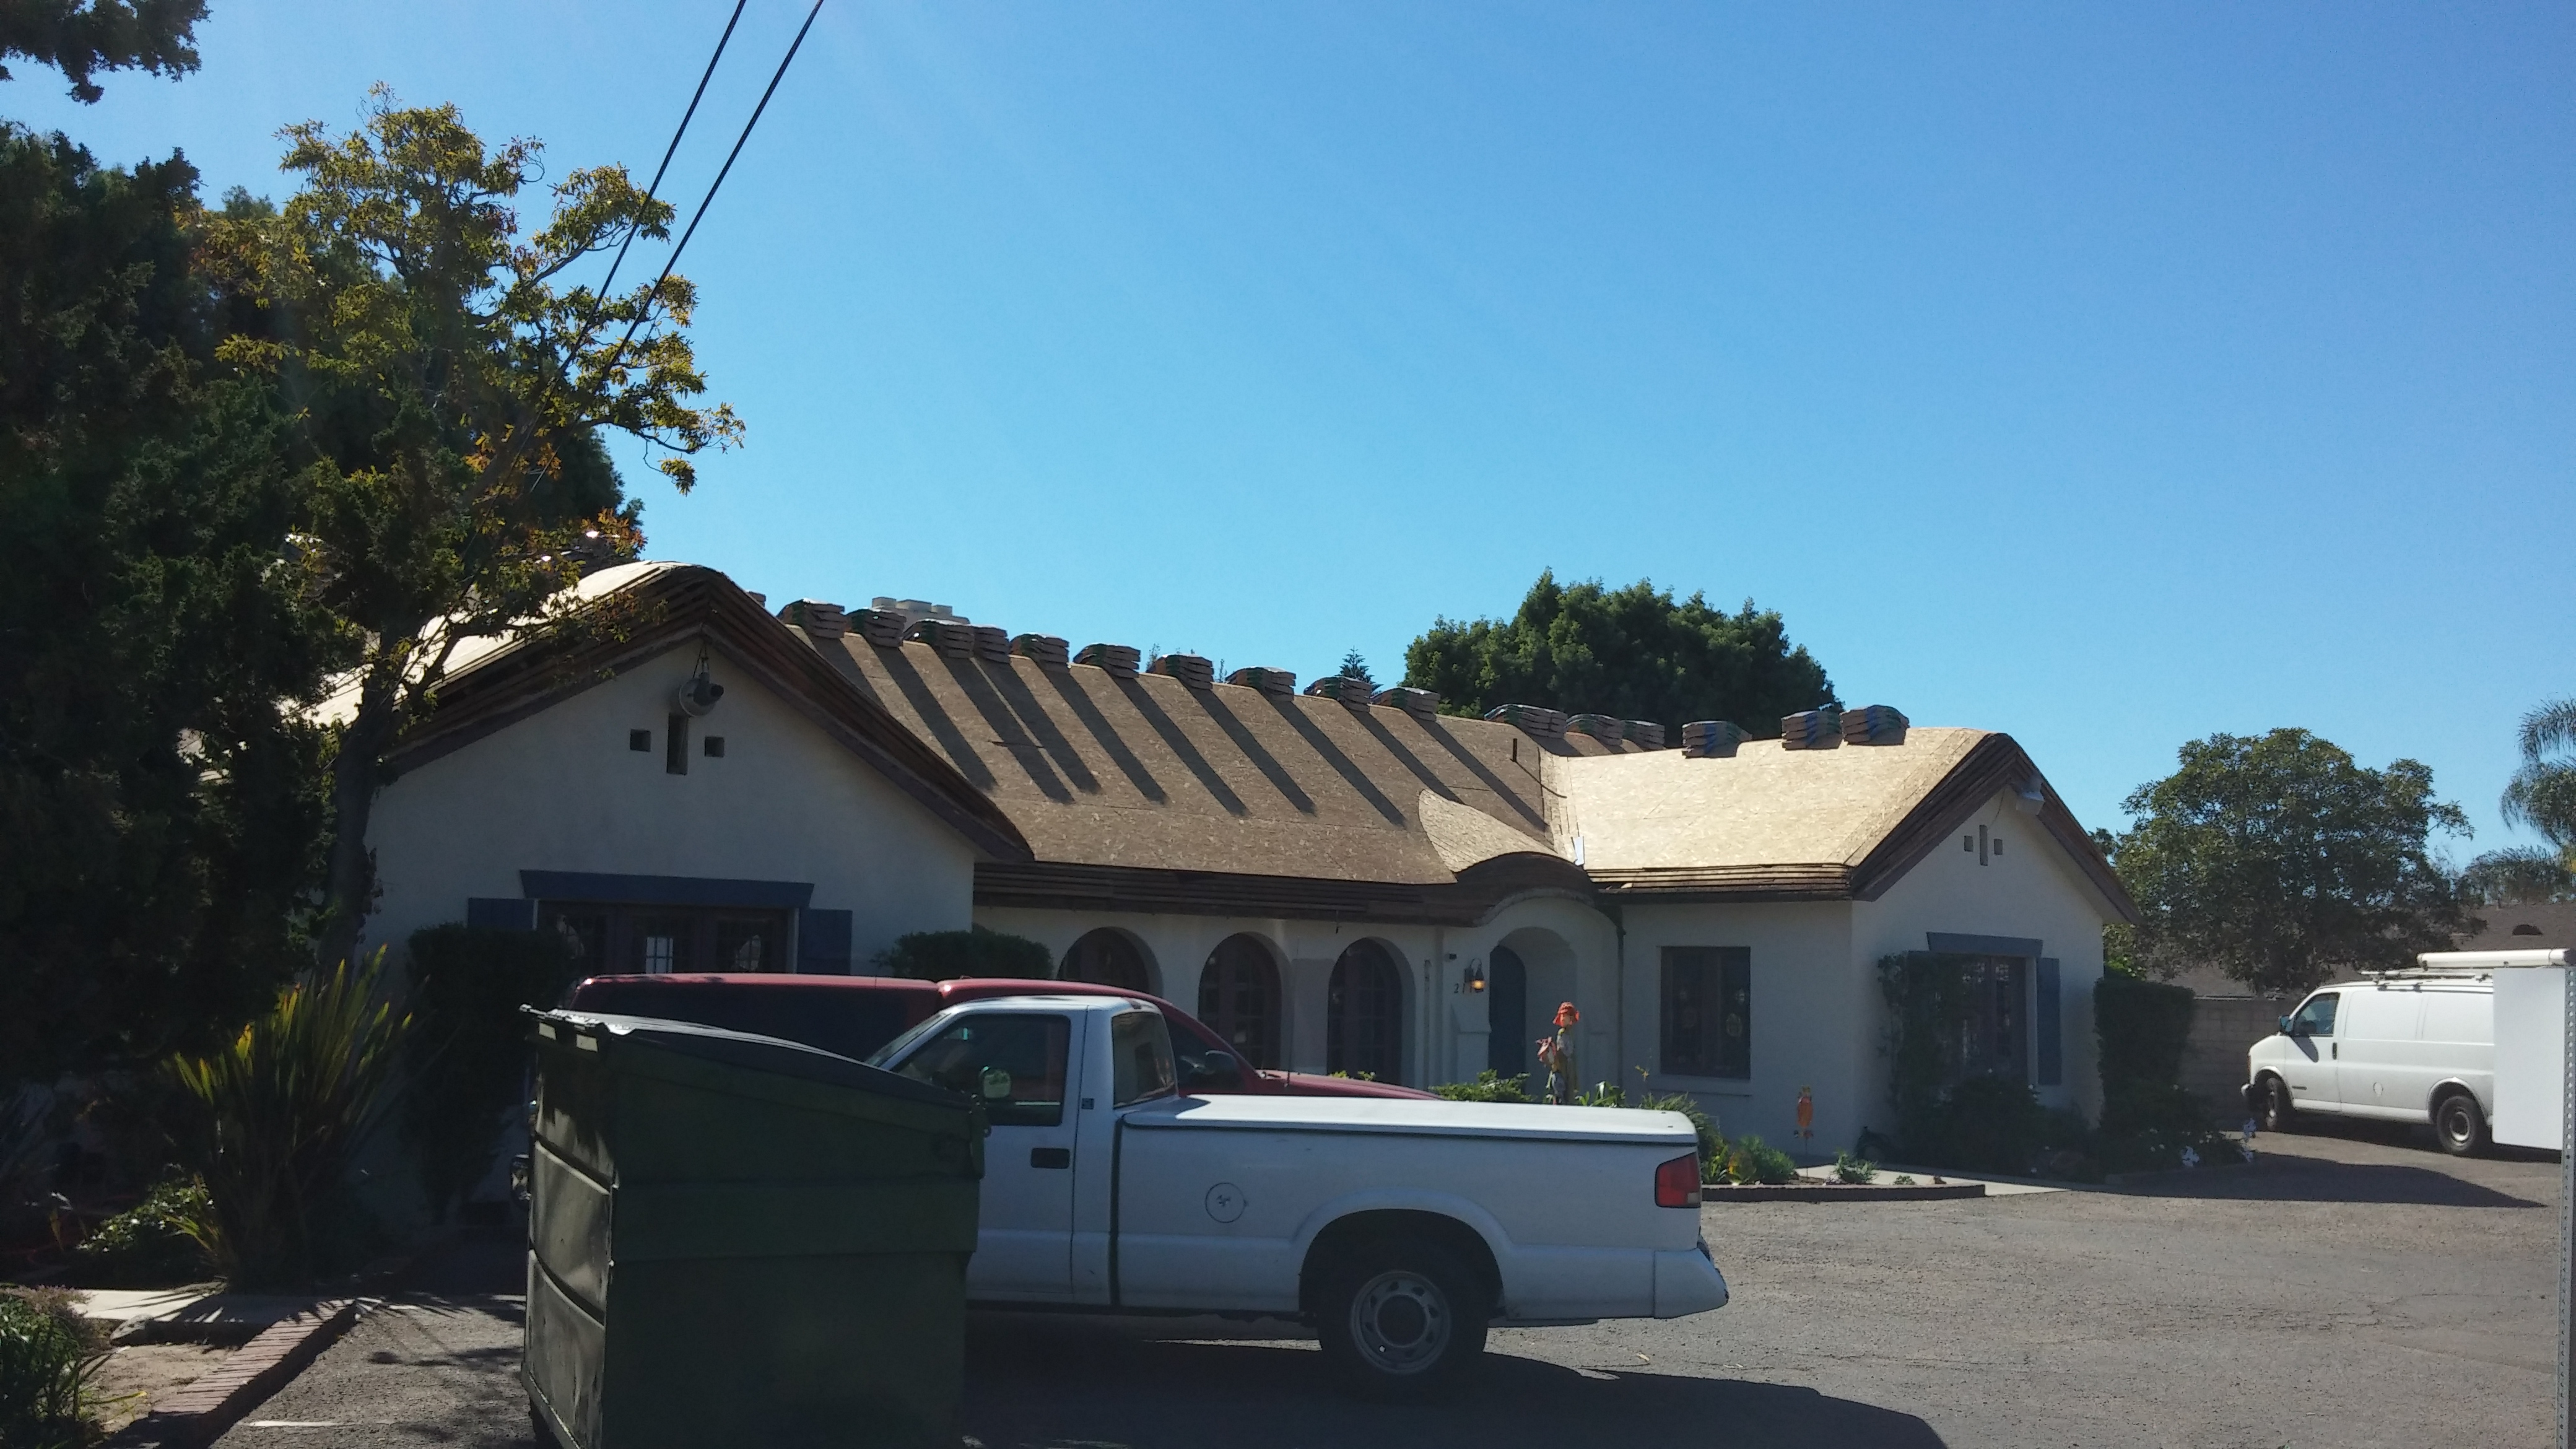 Roof Sheeting - Anointed Amir Construction